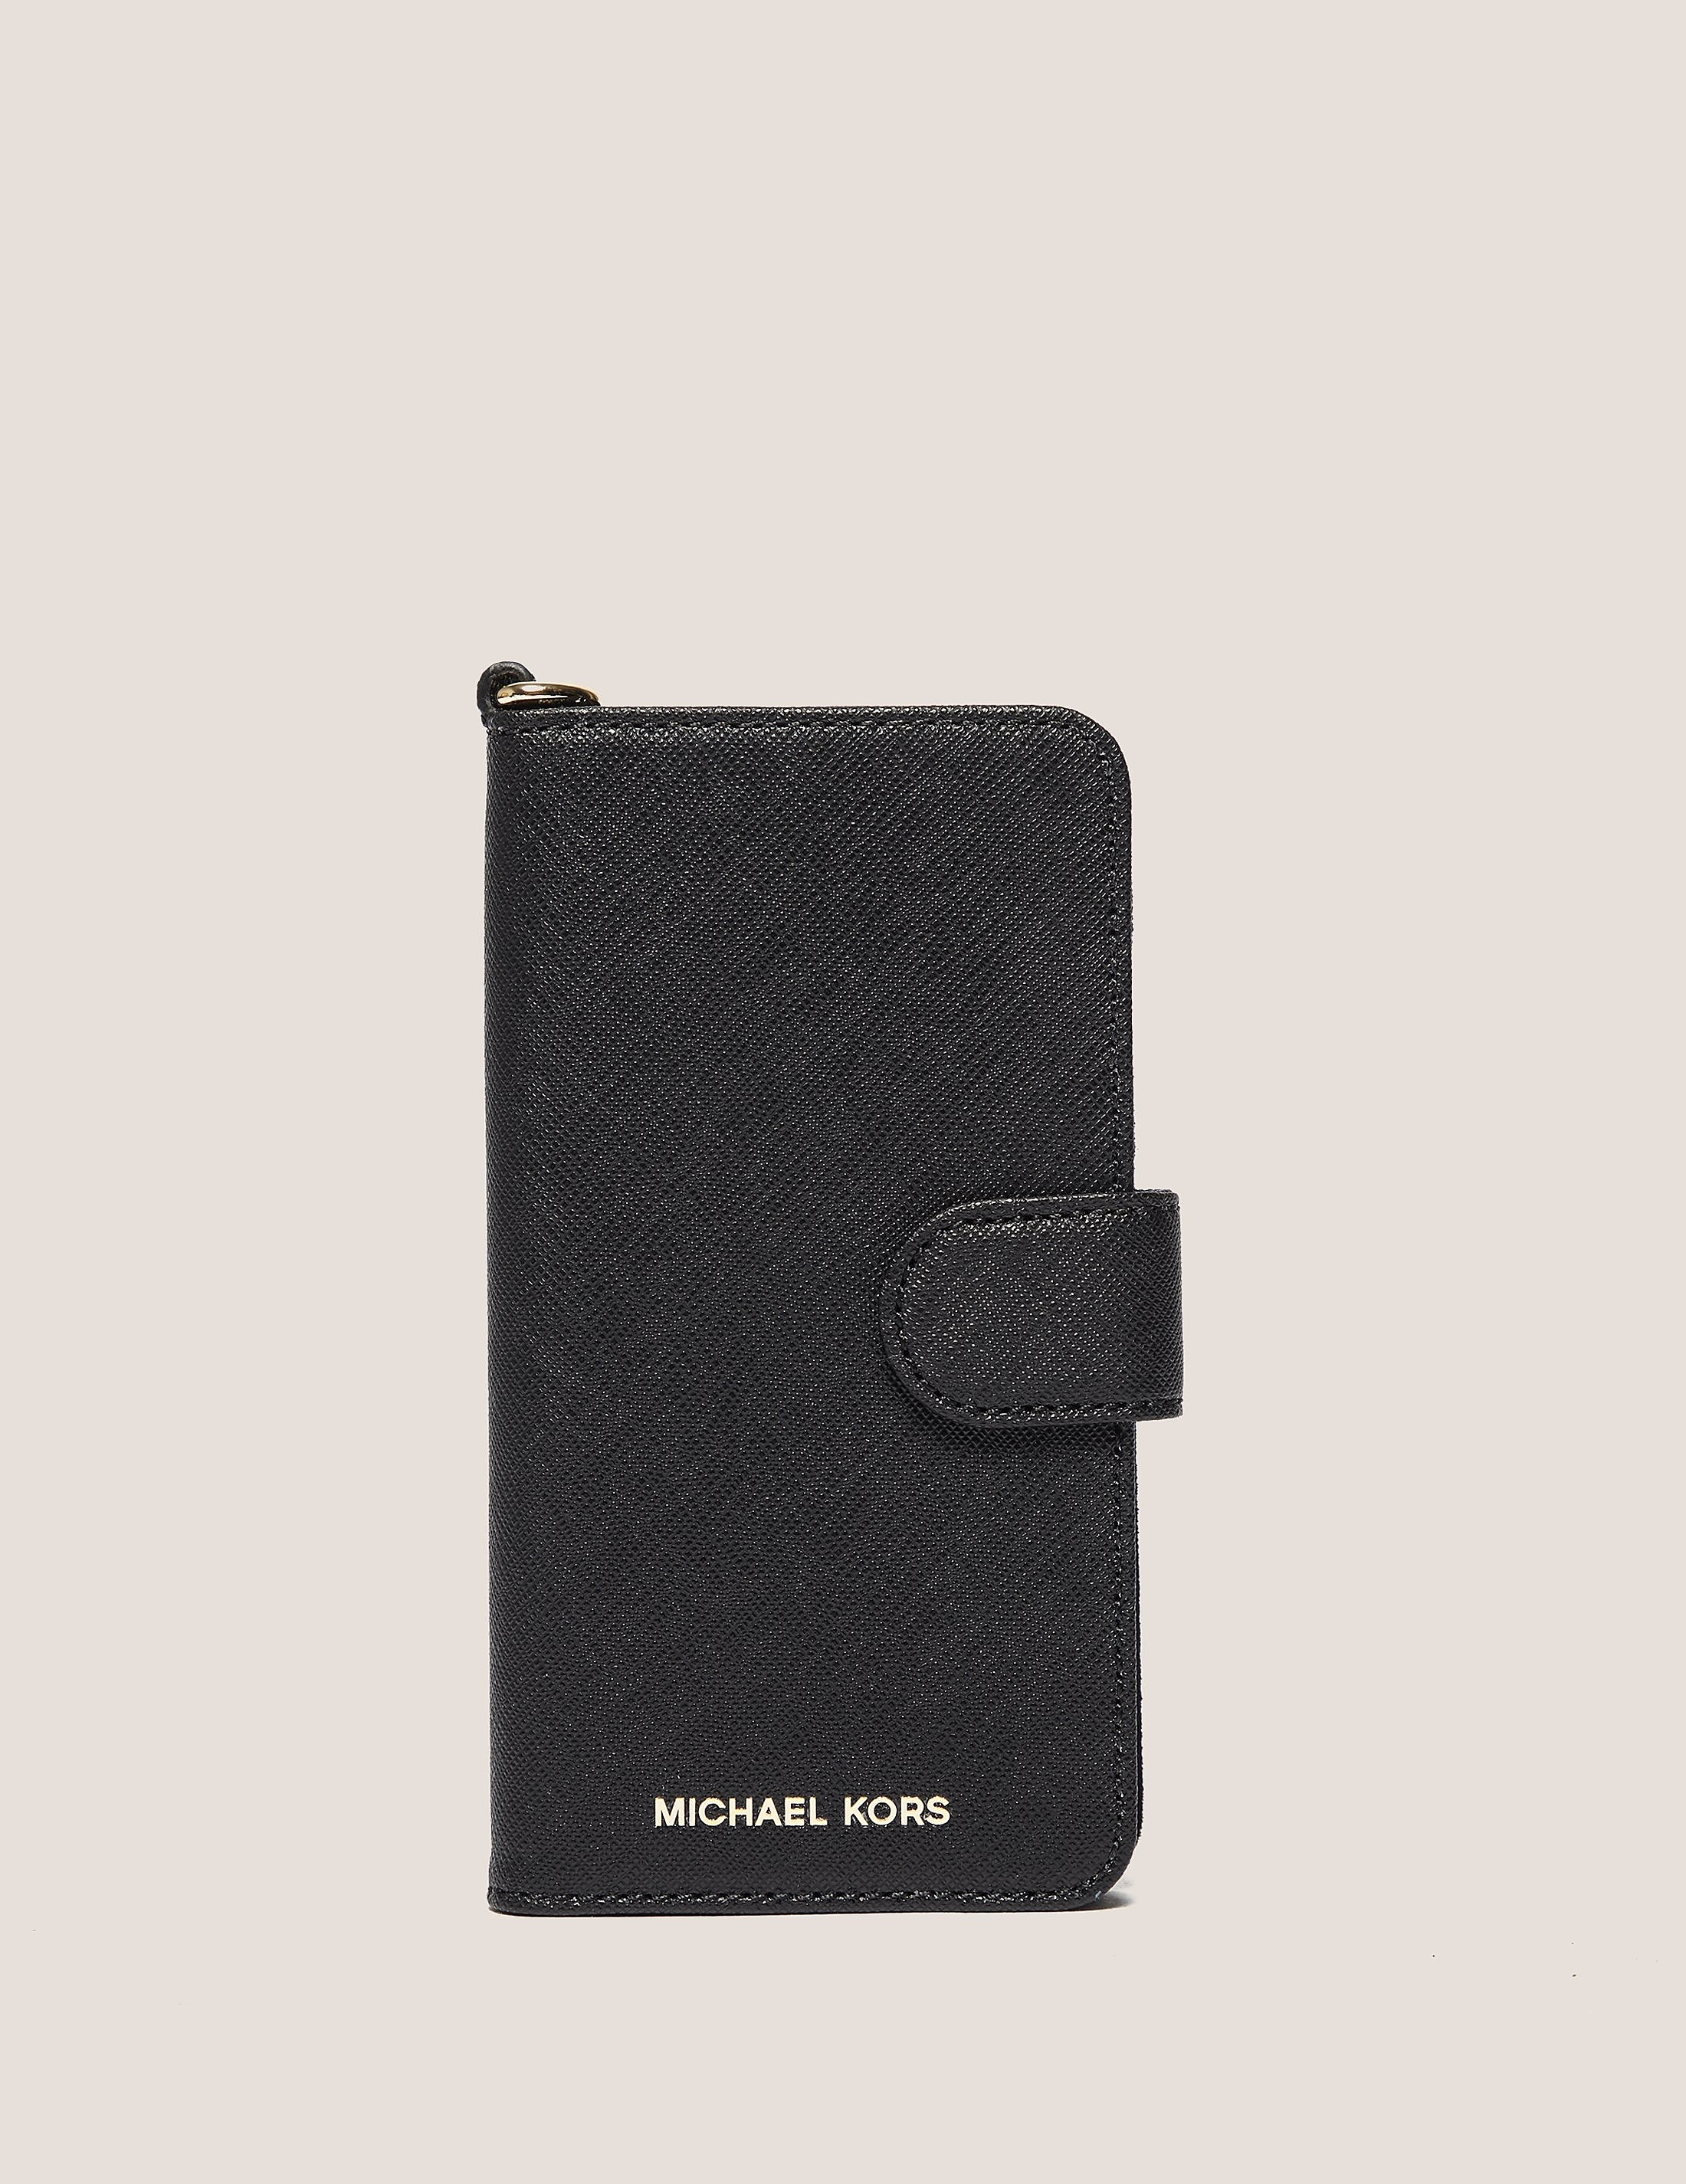 Michael Kors Leather iPhone6 Phone Case